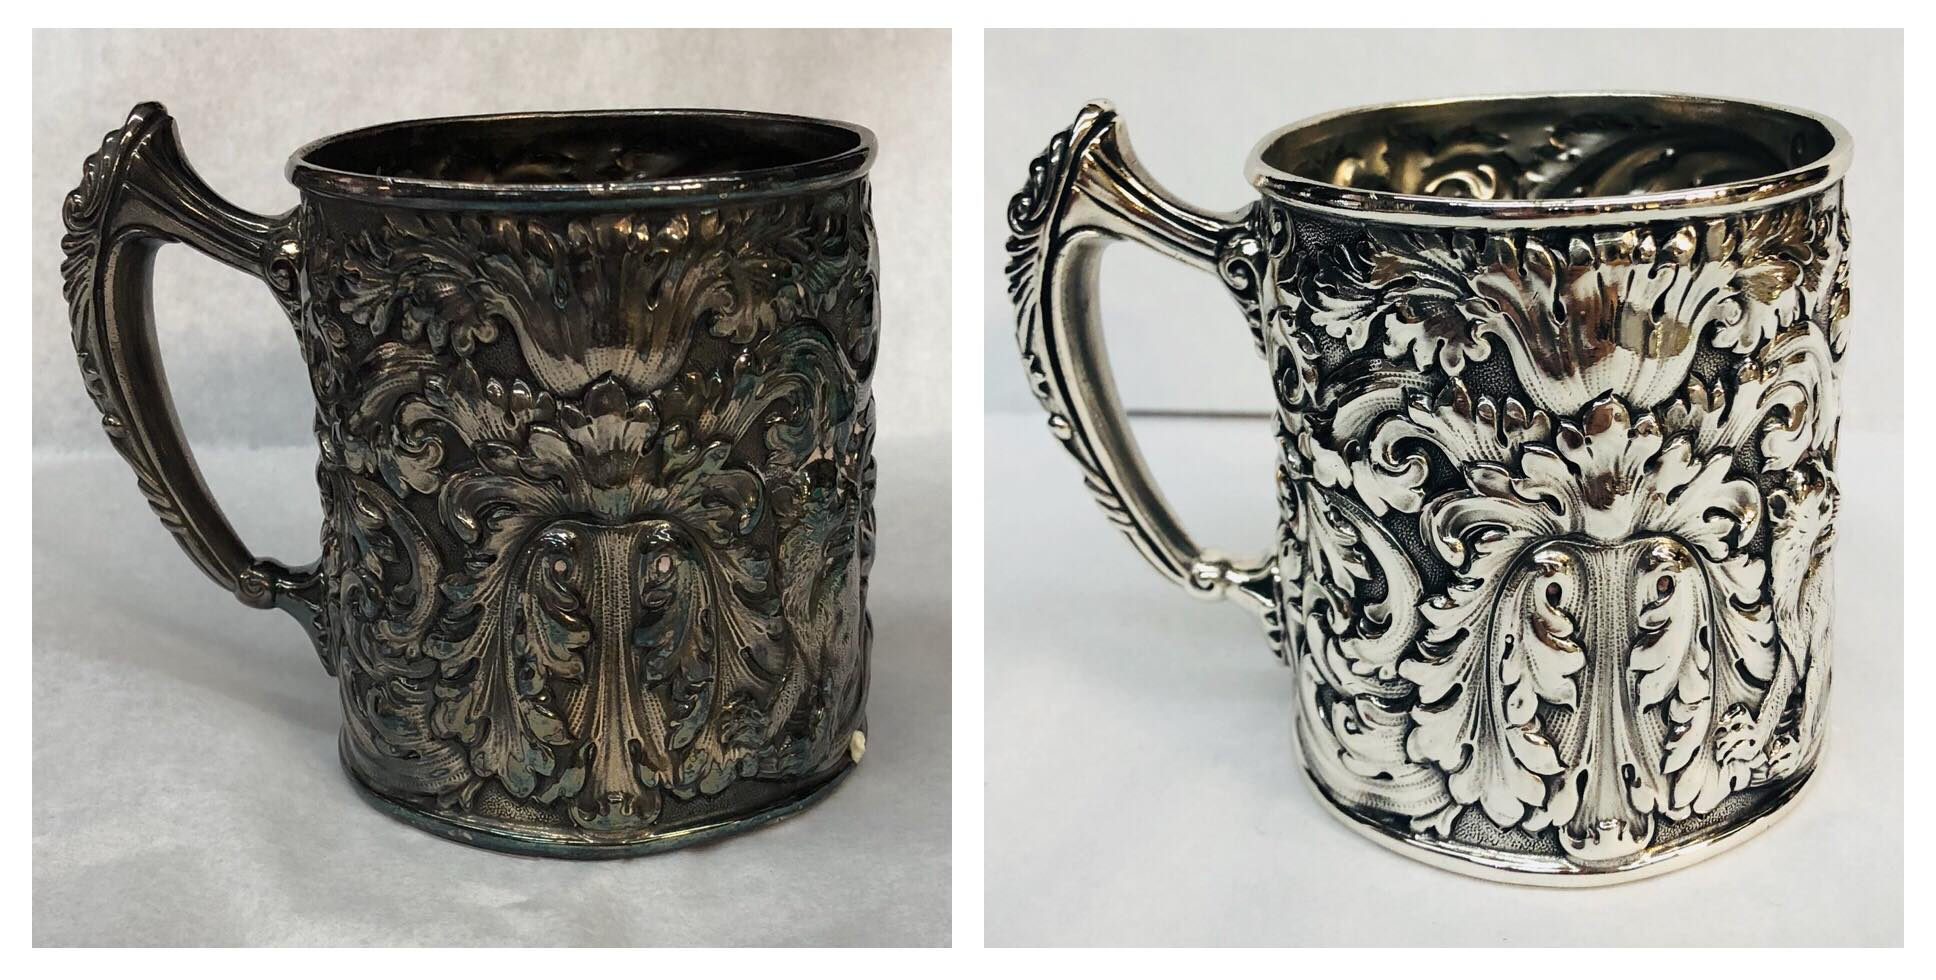 Before/after antique Silver mug